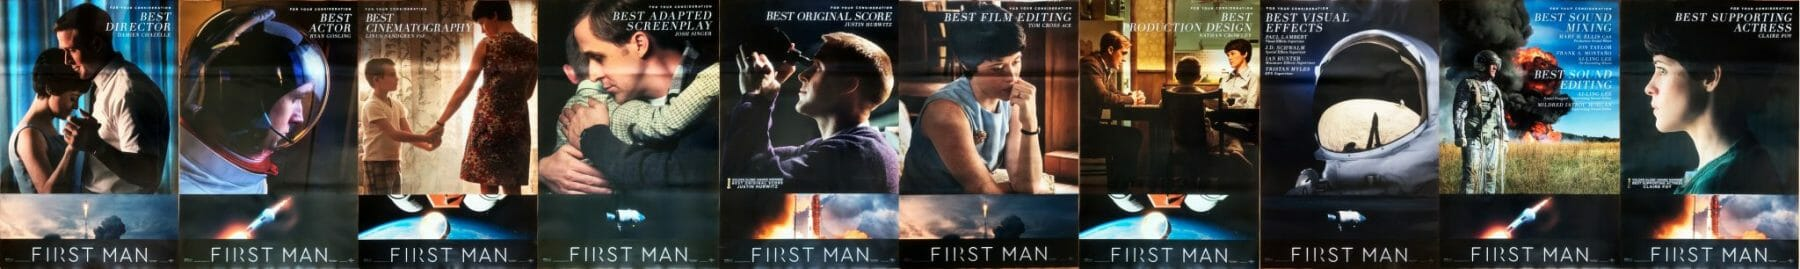 Firstman7